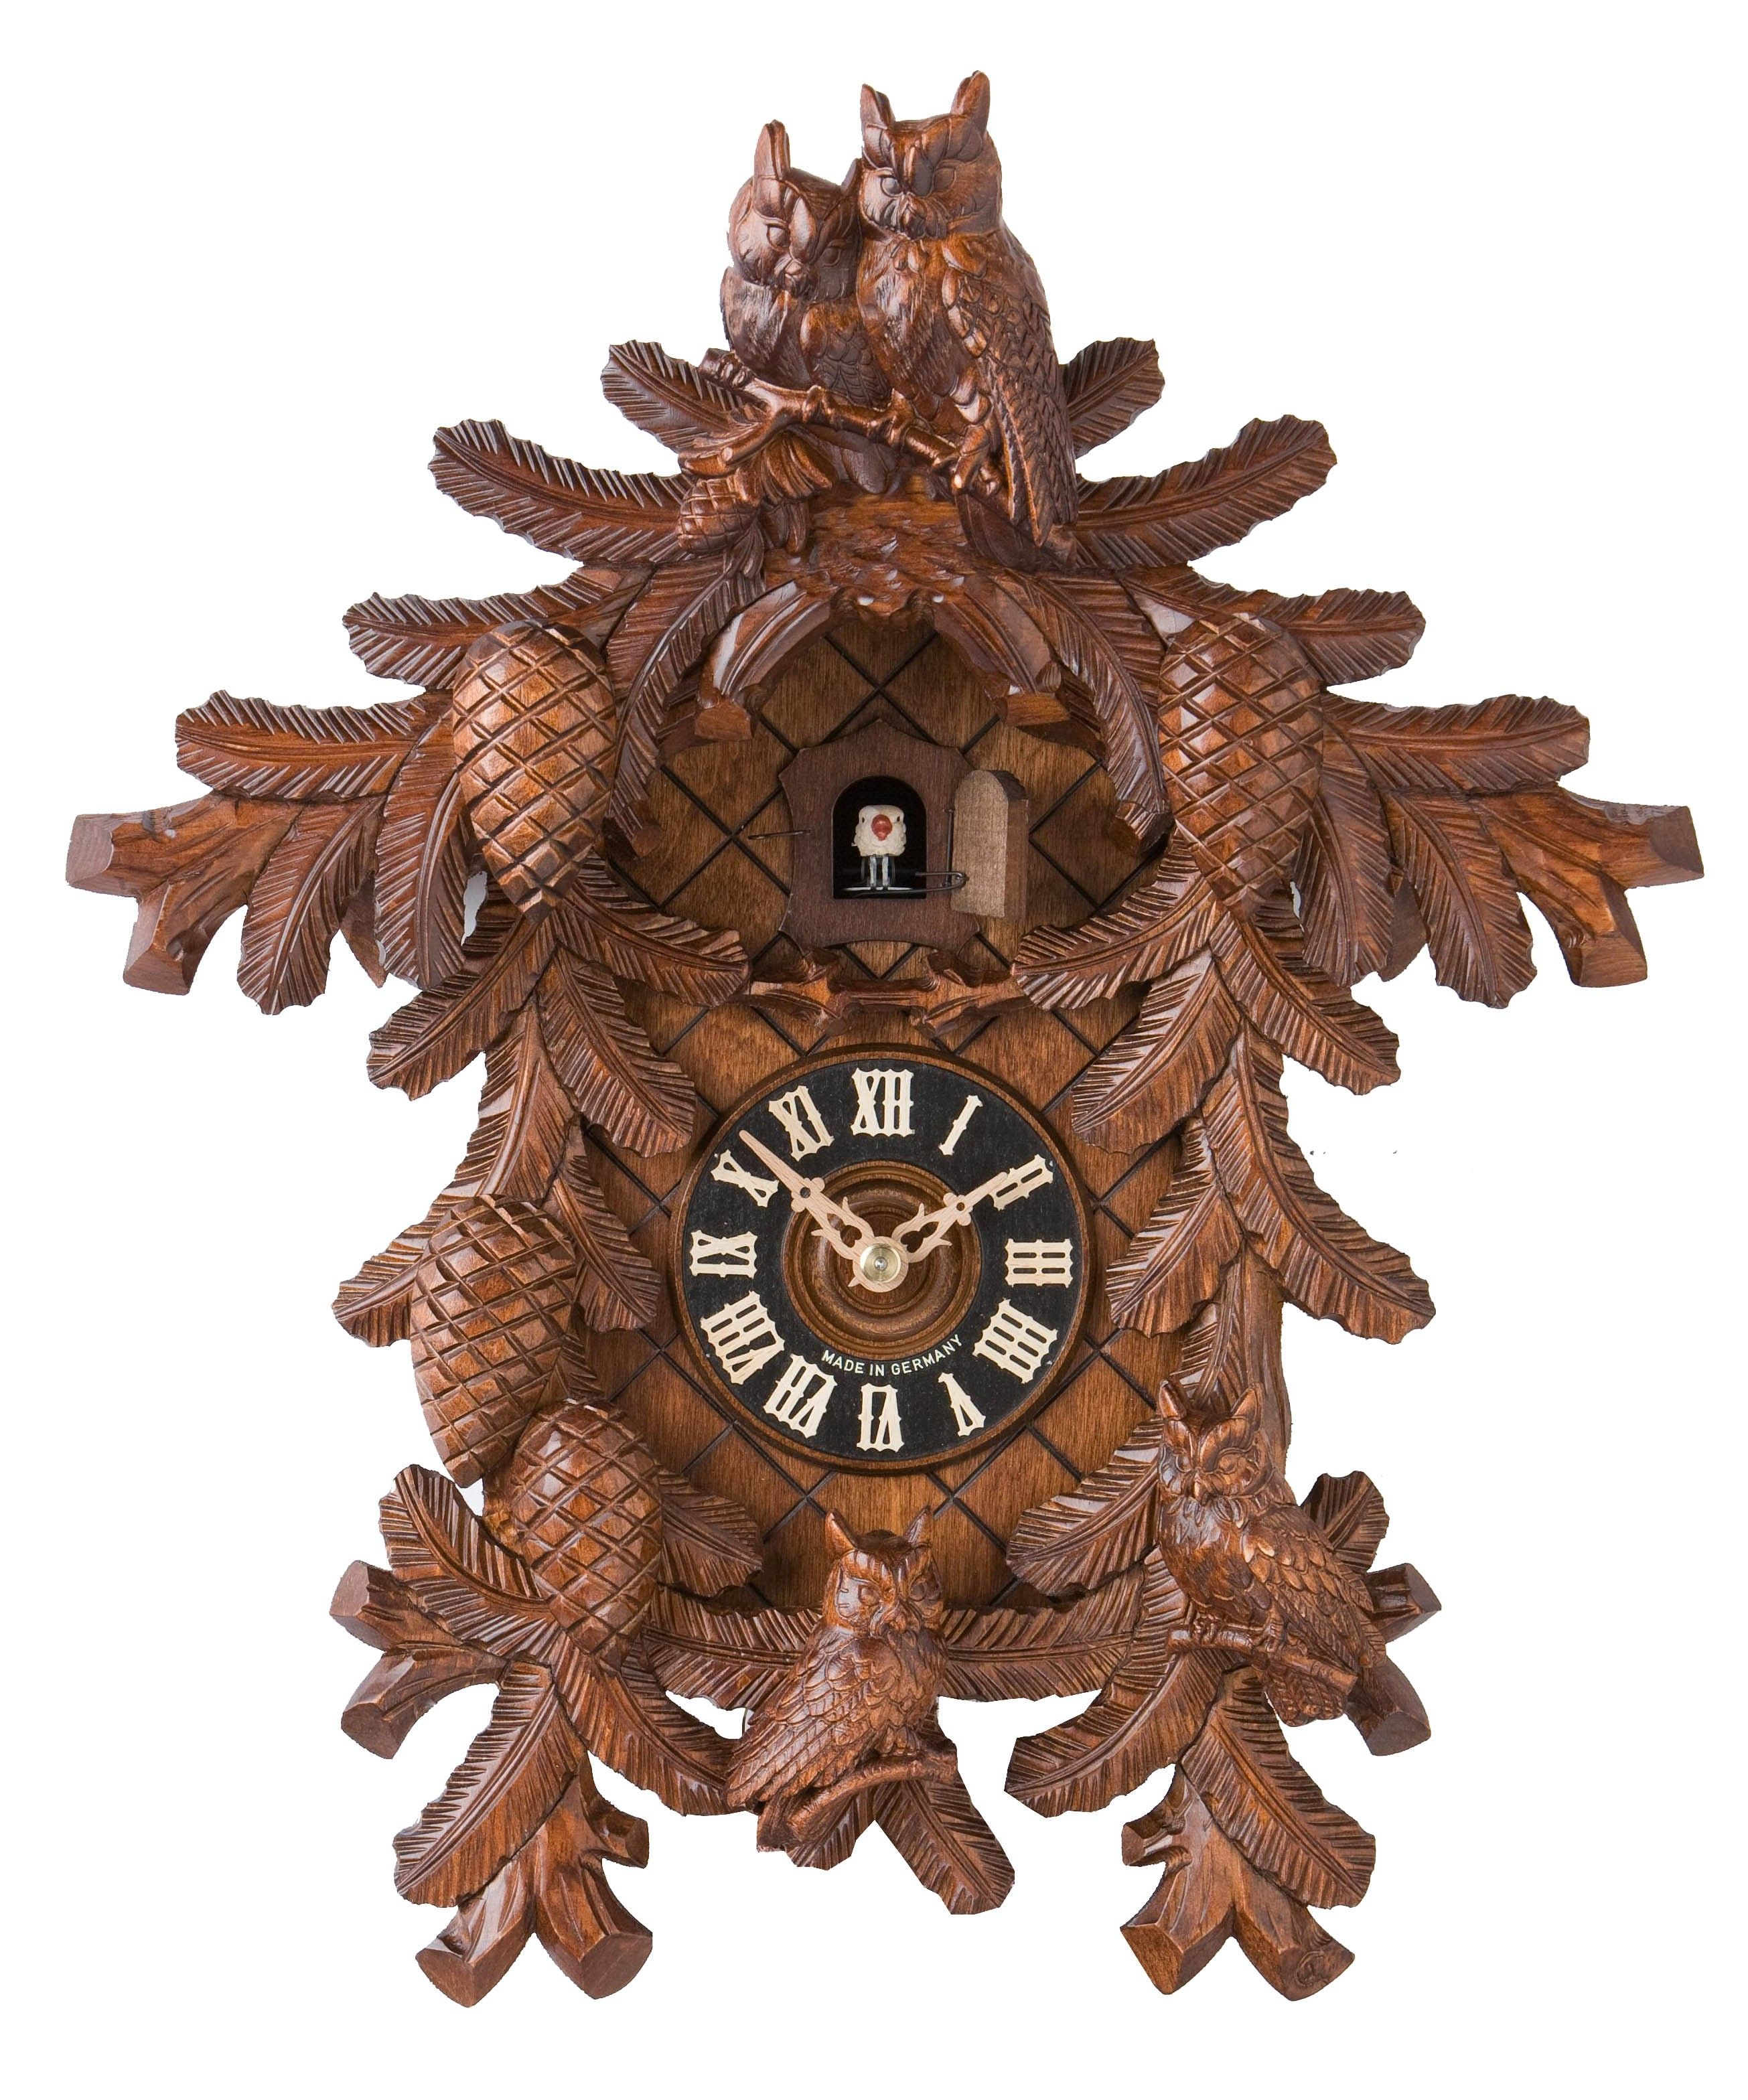 NIB Authentic Hoenes German Black Forest Cuckoo Clock 4 Owls 8 Day Very Rare